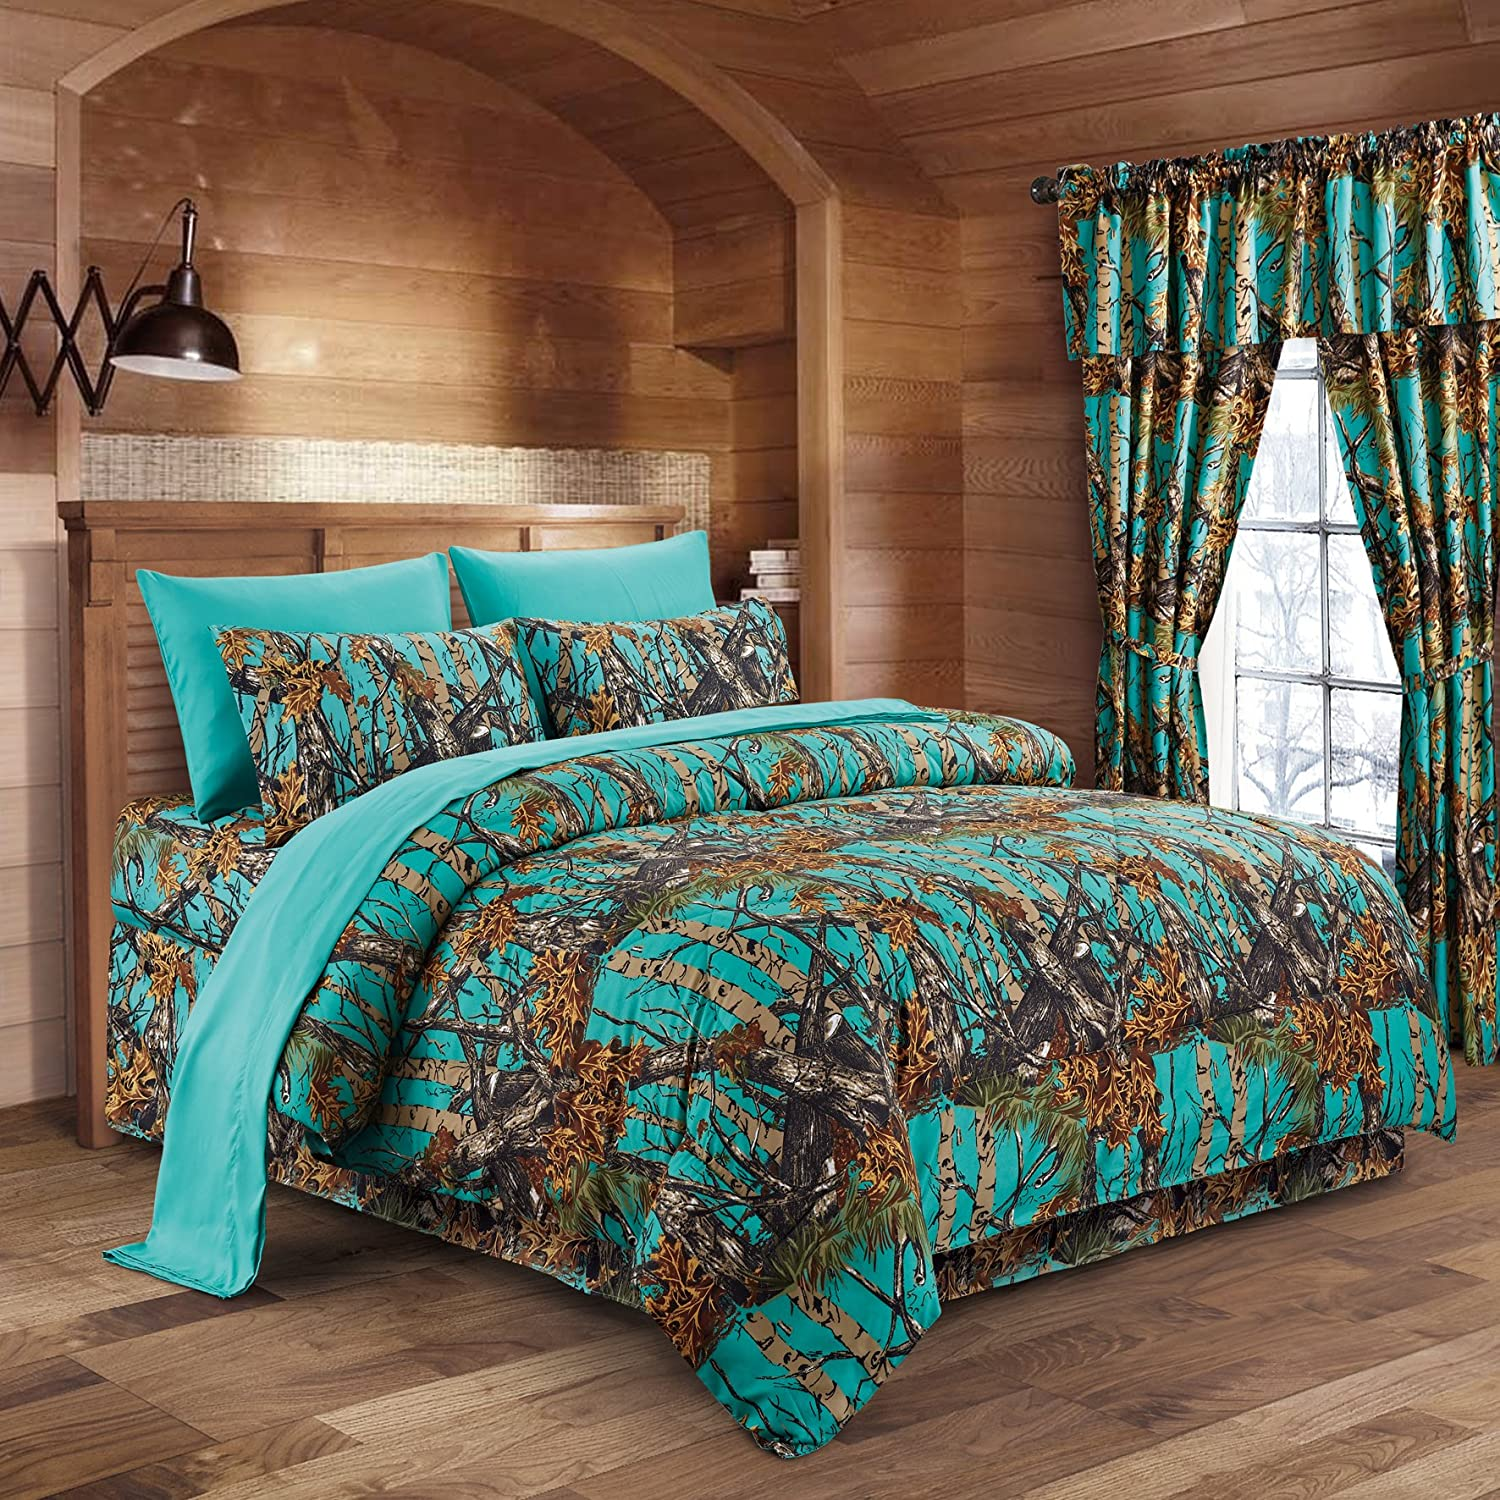 Teal Camouflage King 8pc Premium Luxury Comforter